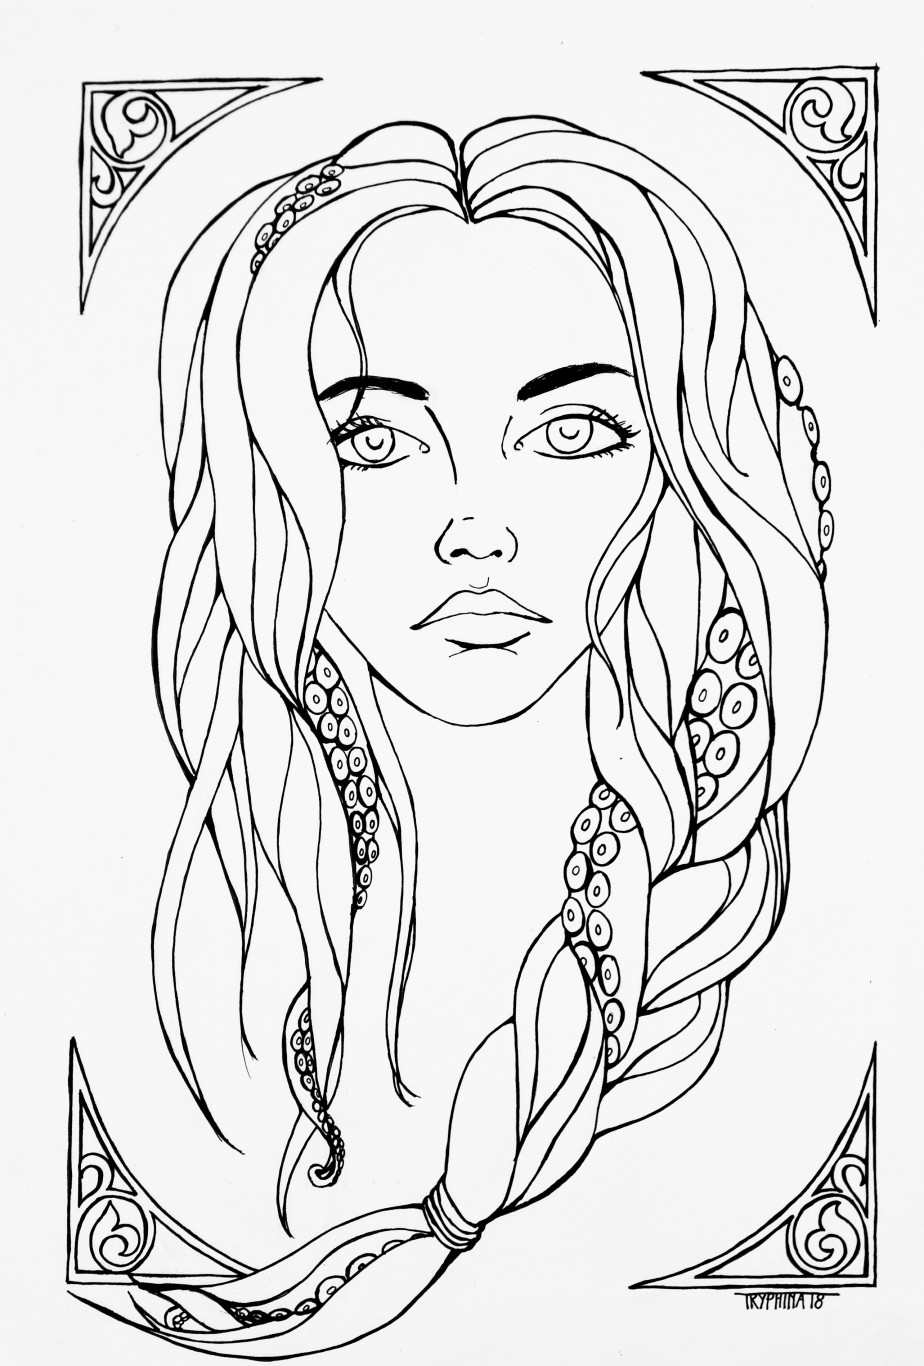 art nouveau style portrait of a woman with tentacles entwied in her long hair